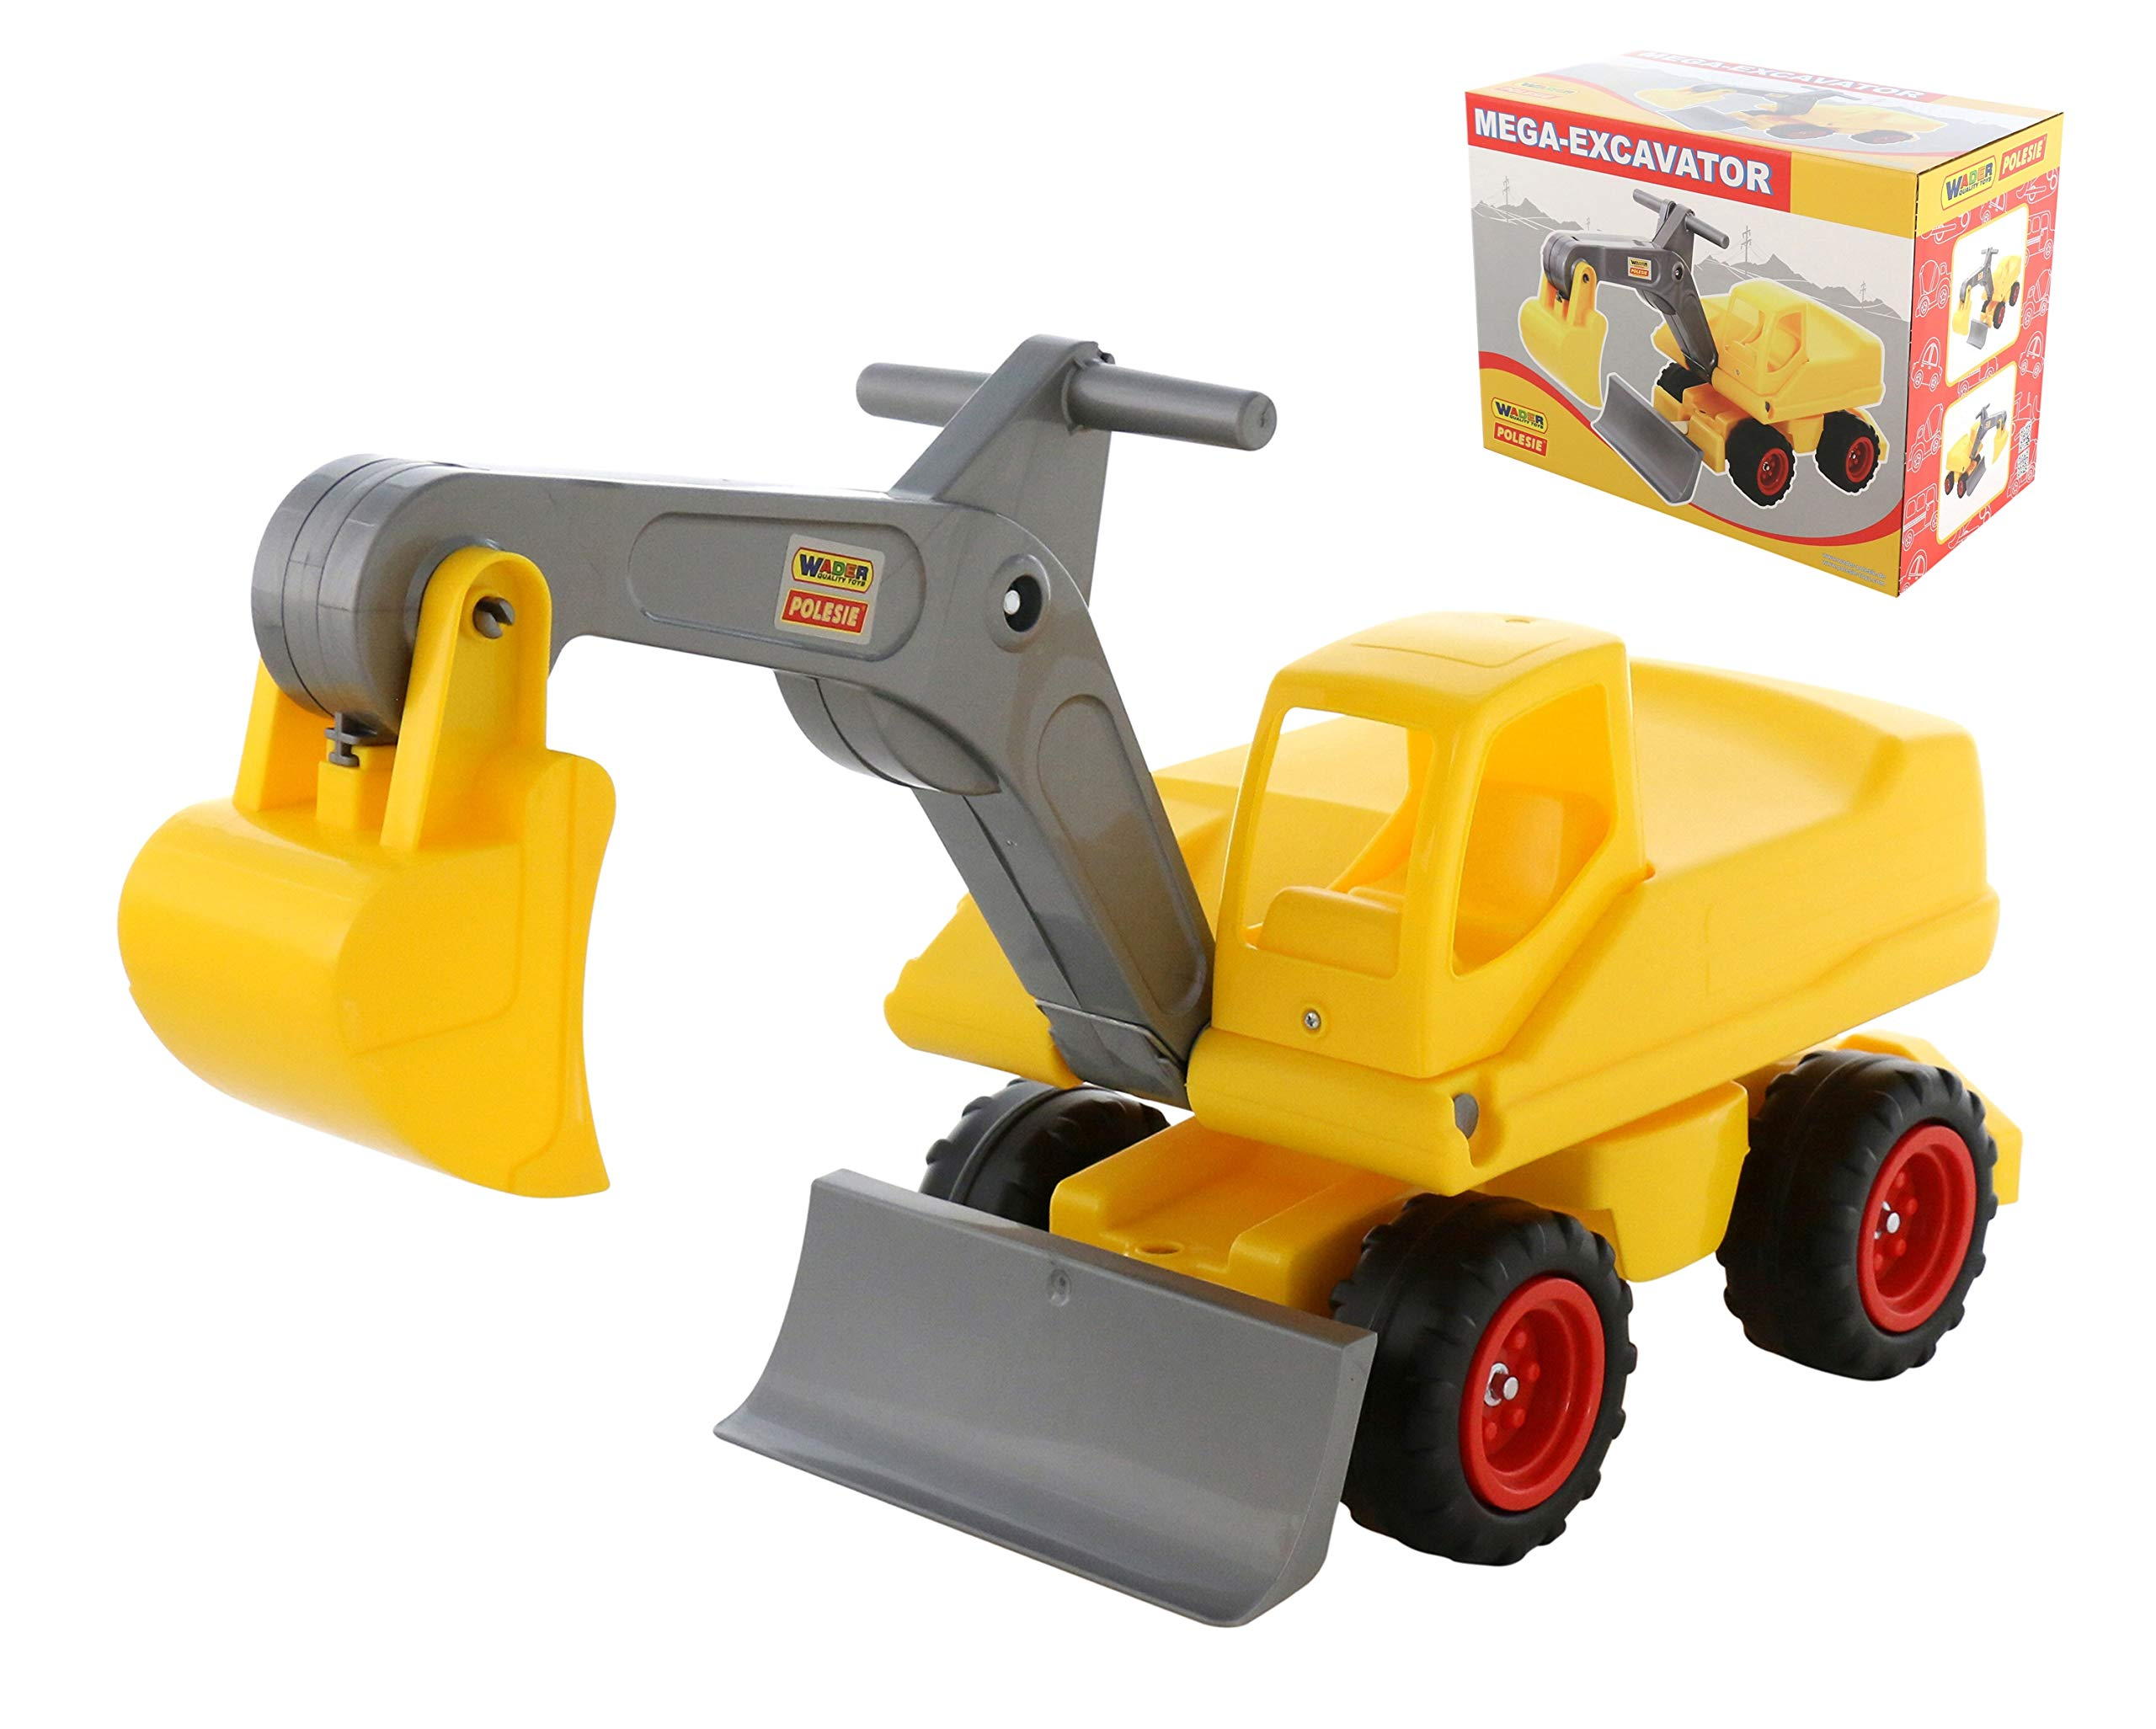 Polesie 66220 Mega-Excavator with Seat (Box) -Toy Vehicless, Multi Colour